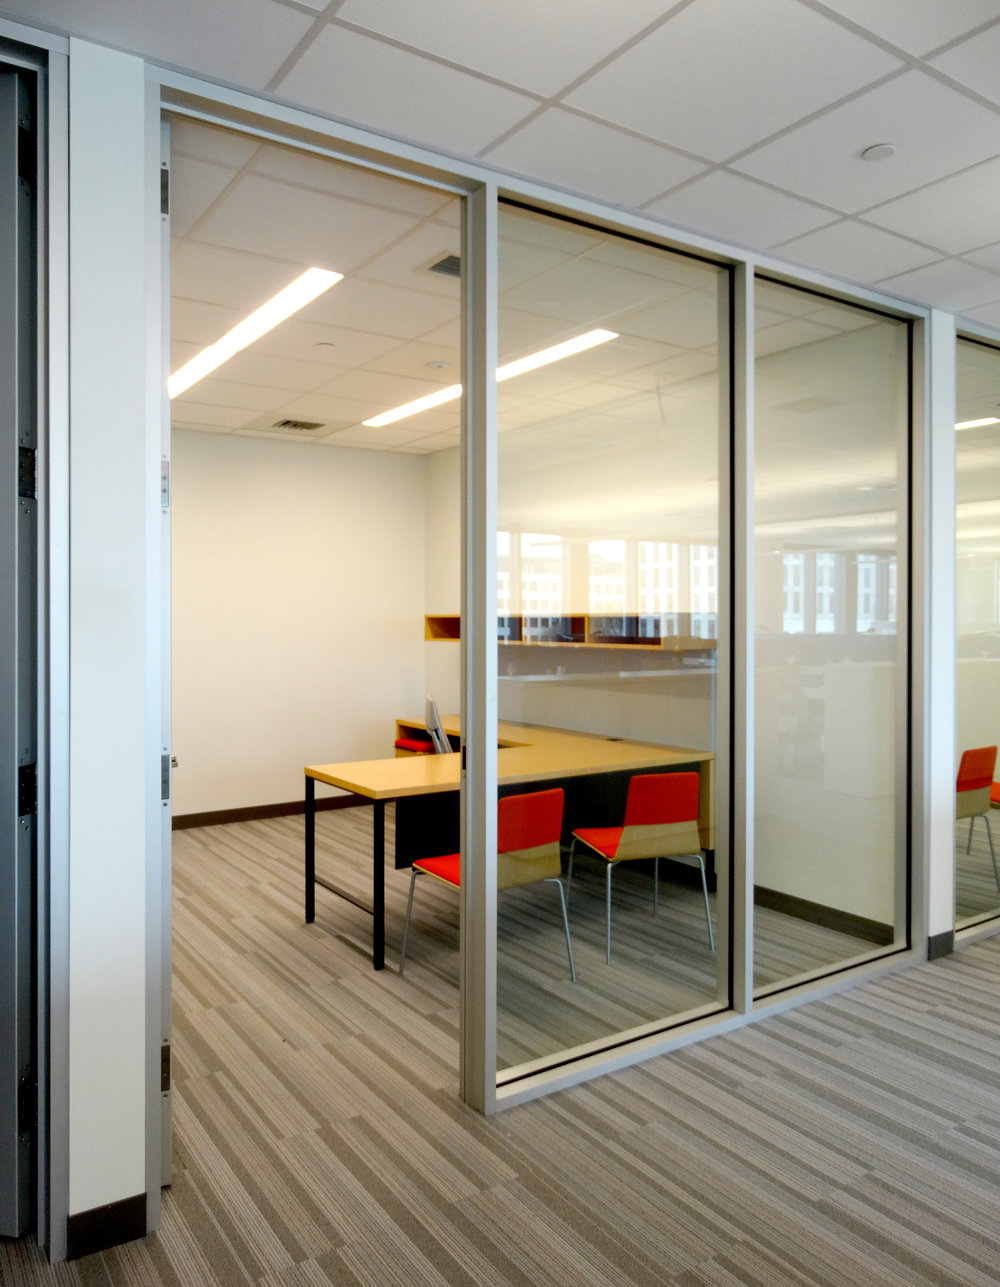 Encase Clear Anodized Aluminum Framed Glass Office Front Wall - Spaceworks AI.jpg